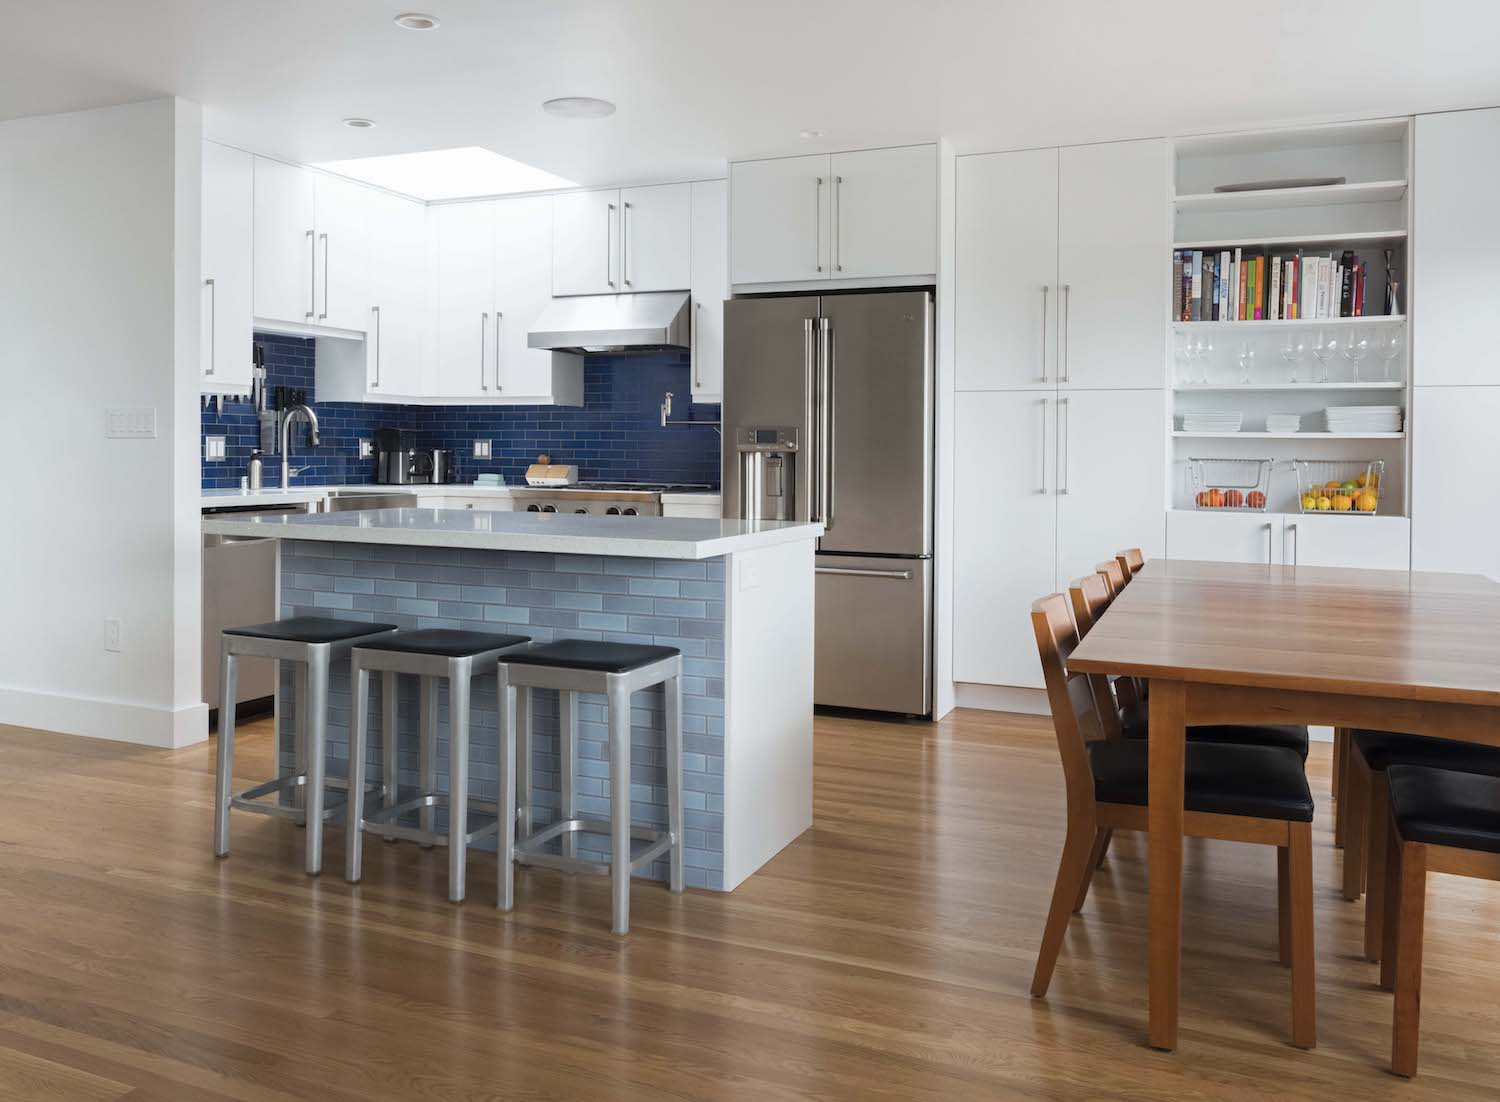 kitchen with white cabinets and wood flooring and blue tile backsplash and stainless steel appliances and wooden dining table.jpg